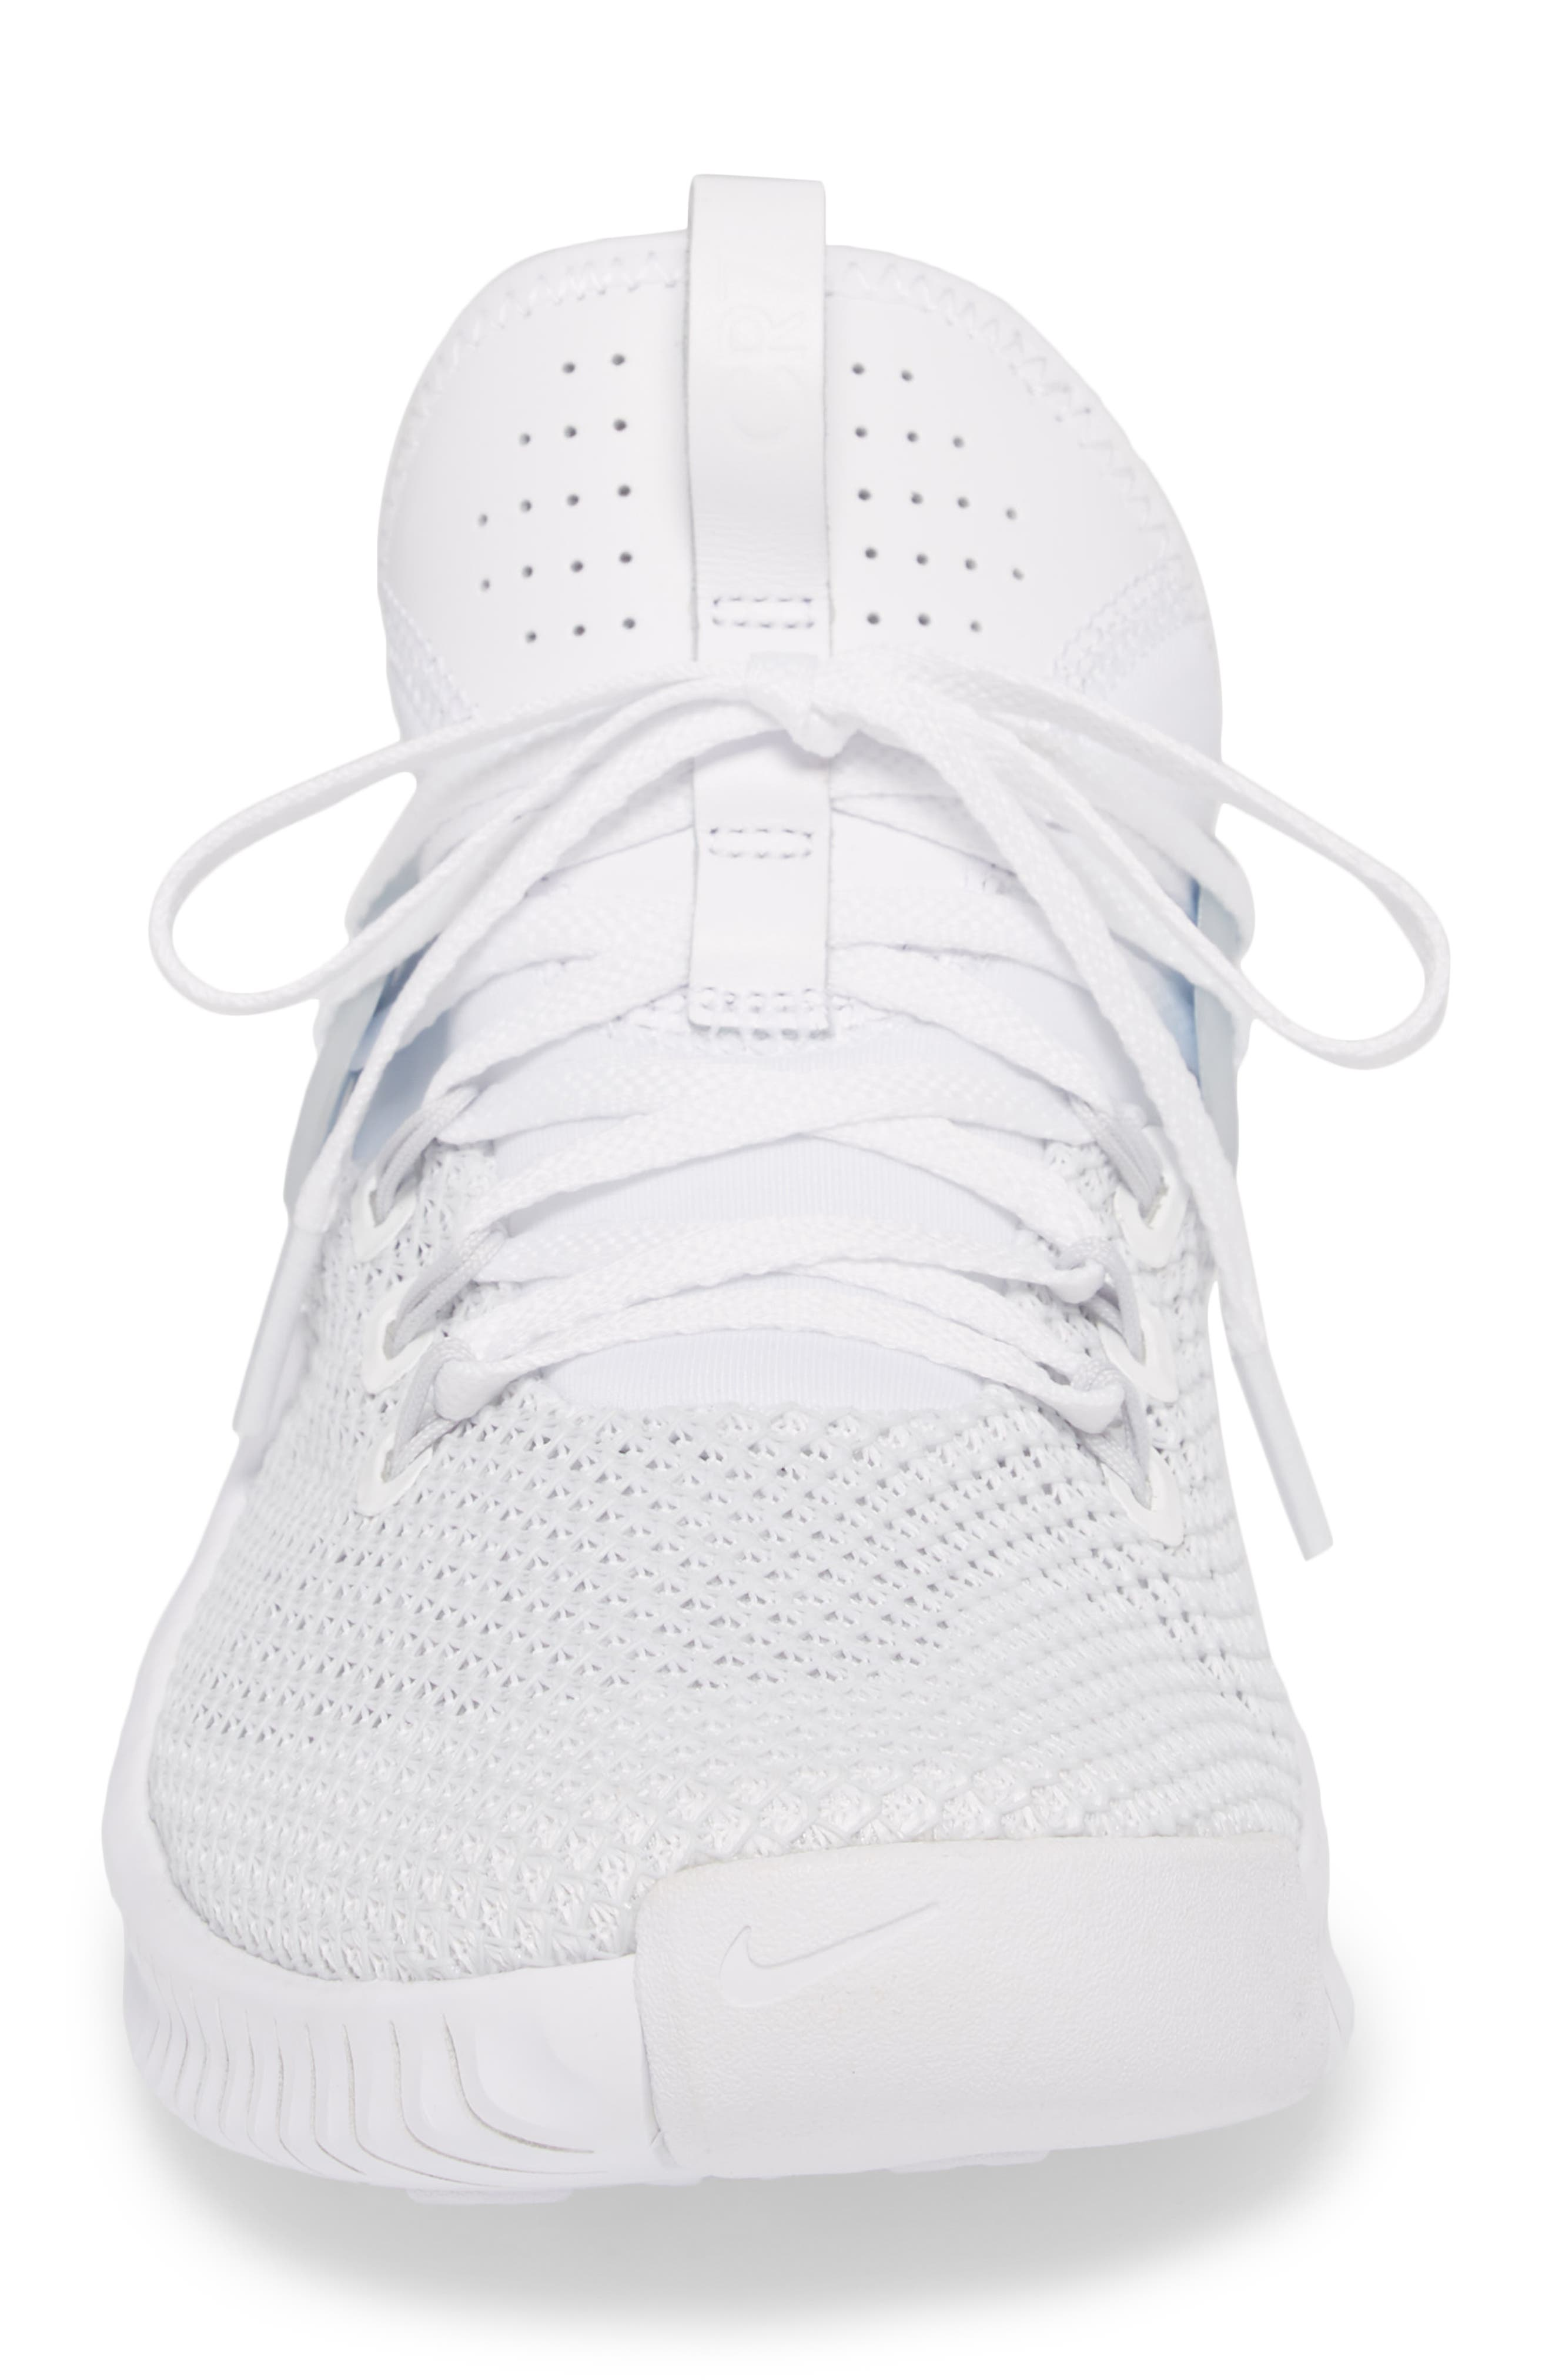 Free x Metcon CR7 Training Shoe,                             Alternate thumbnail 4, color,